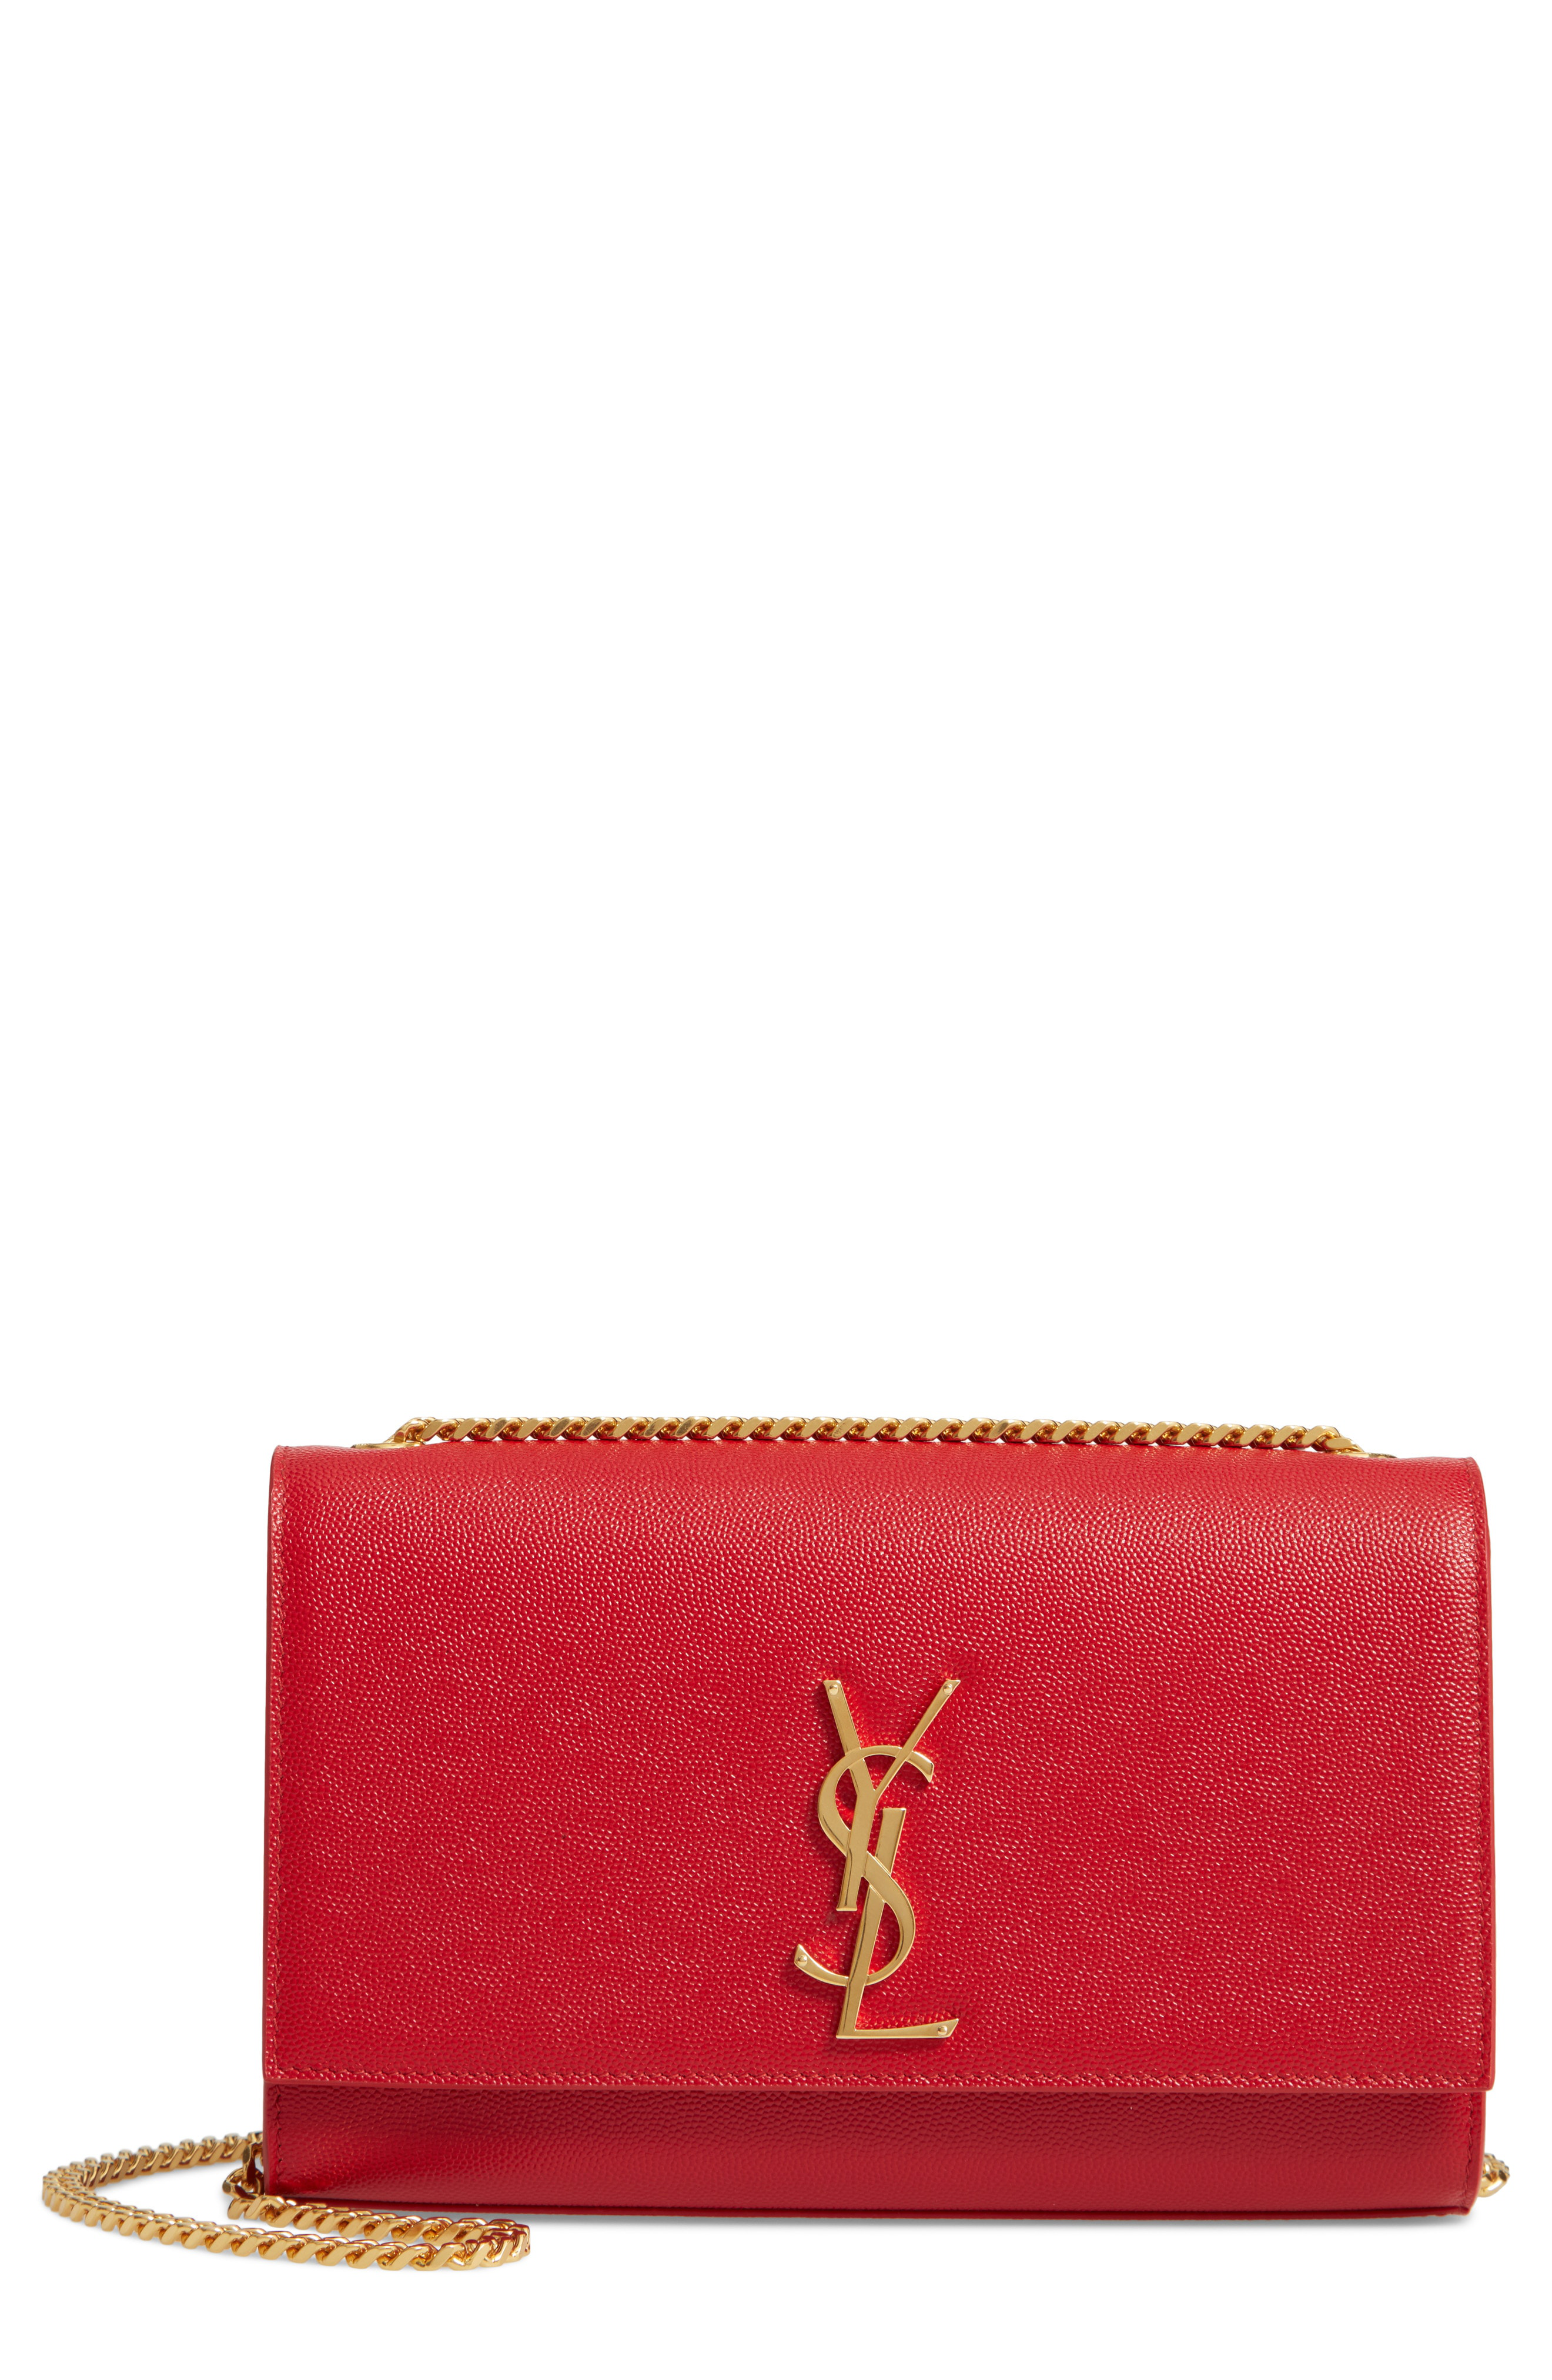 b38228b78dd9 ... serves as a luxe complement to the gleaming goldtone insignia on which  the design is centered— a simple and elegant nod to the Yves Saint Laurent  ...